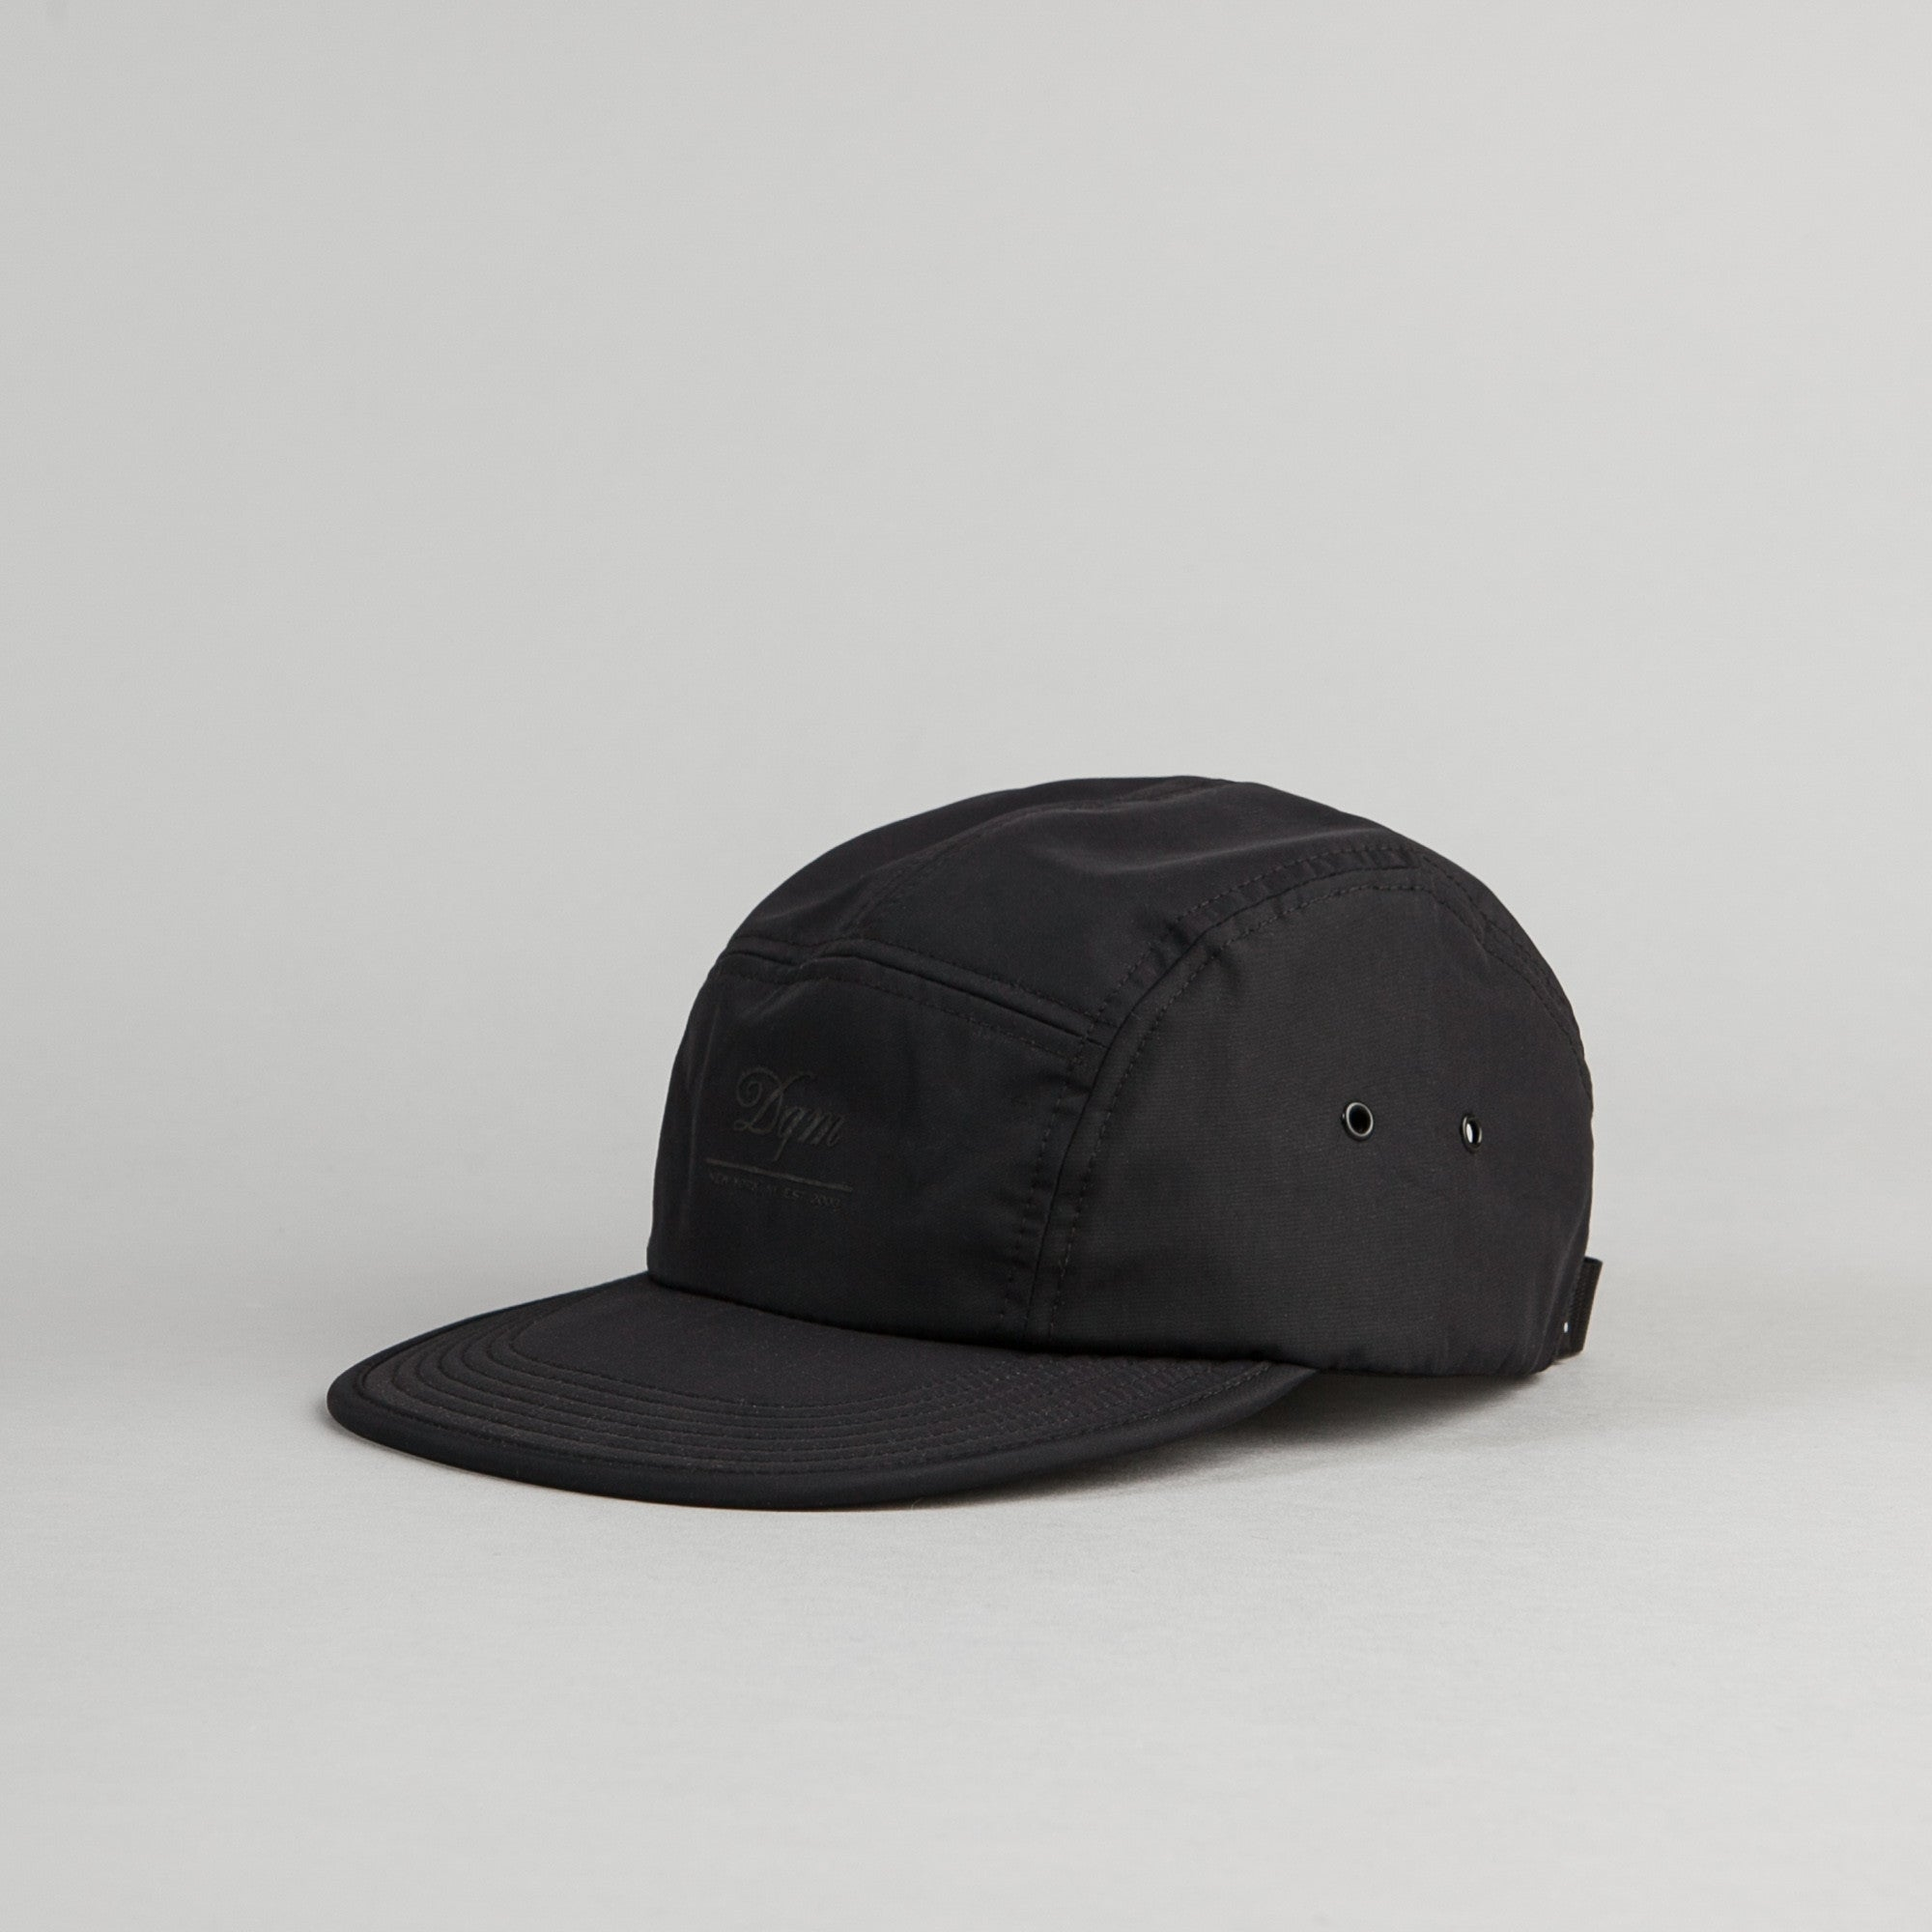 DQM Crushable Nylon Camp Cap - Black